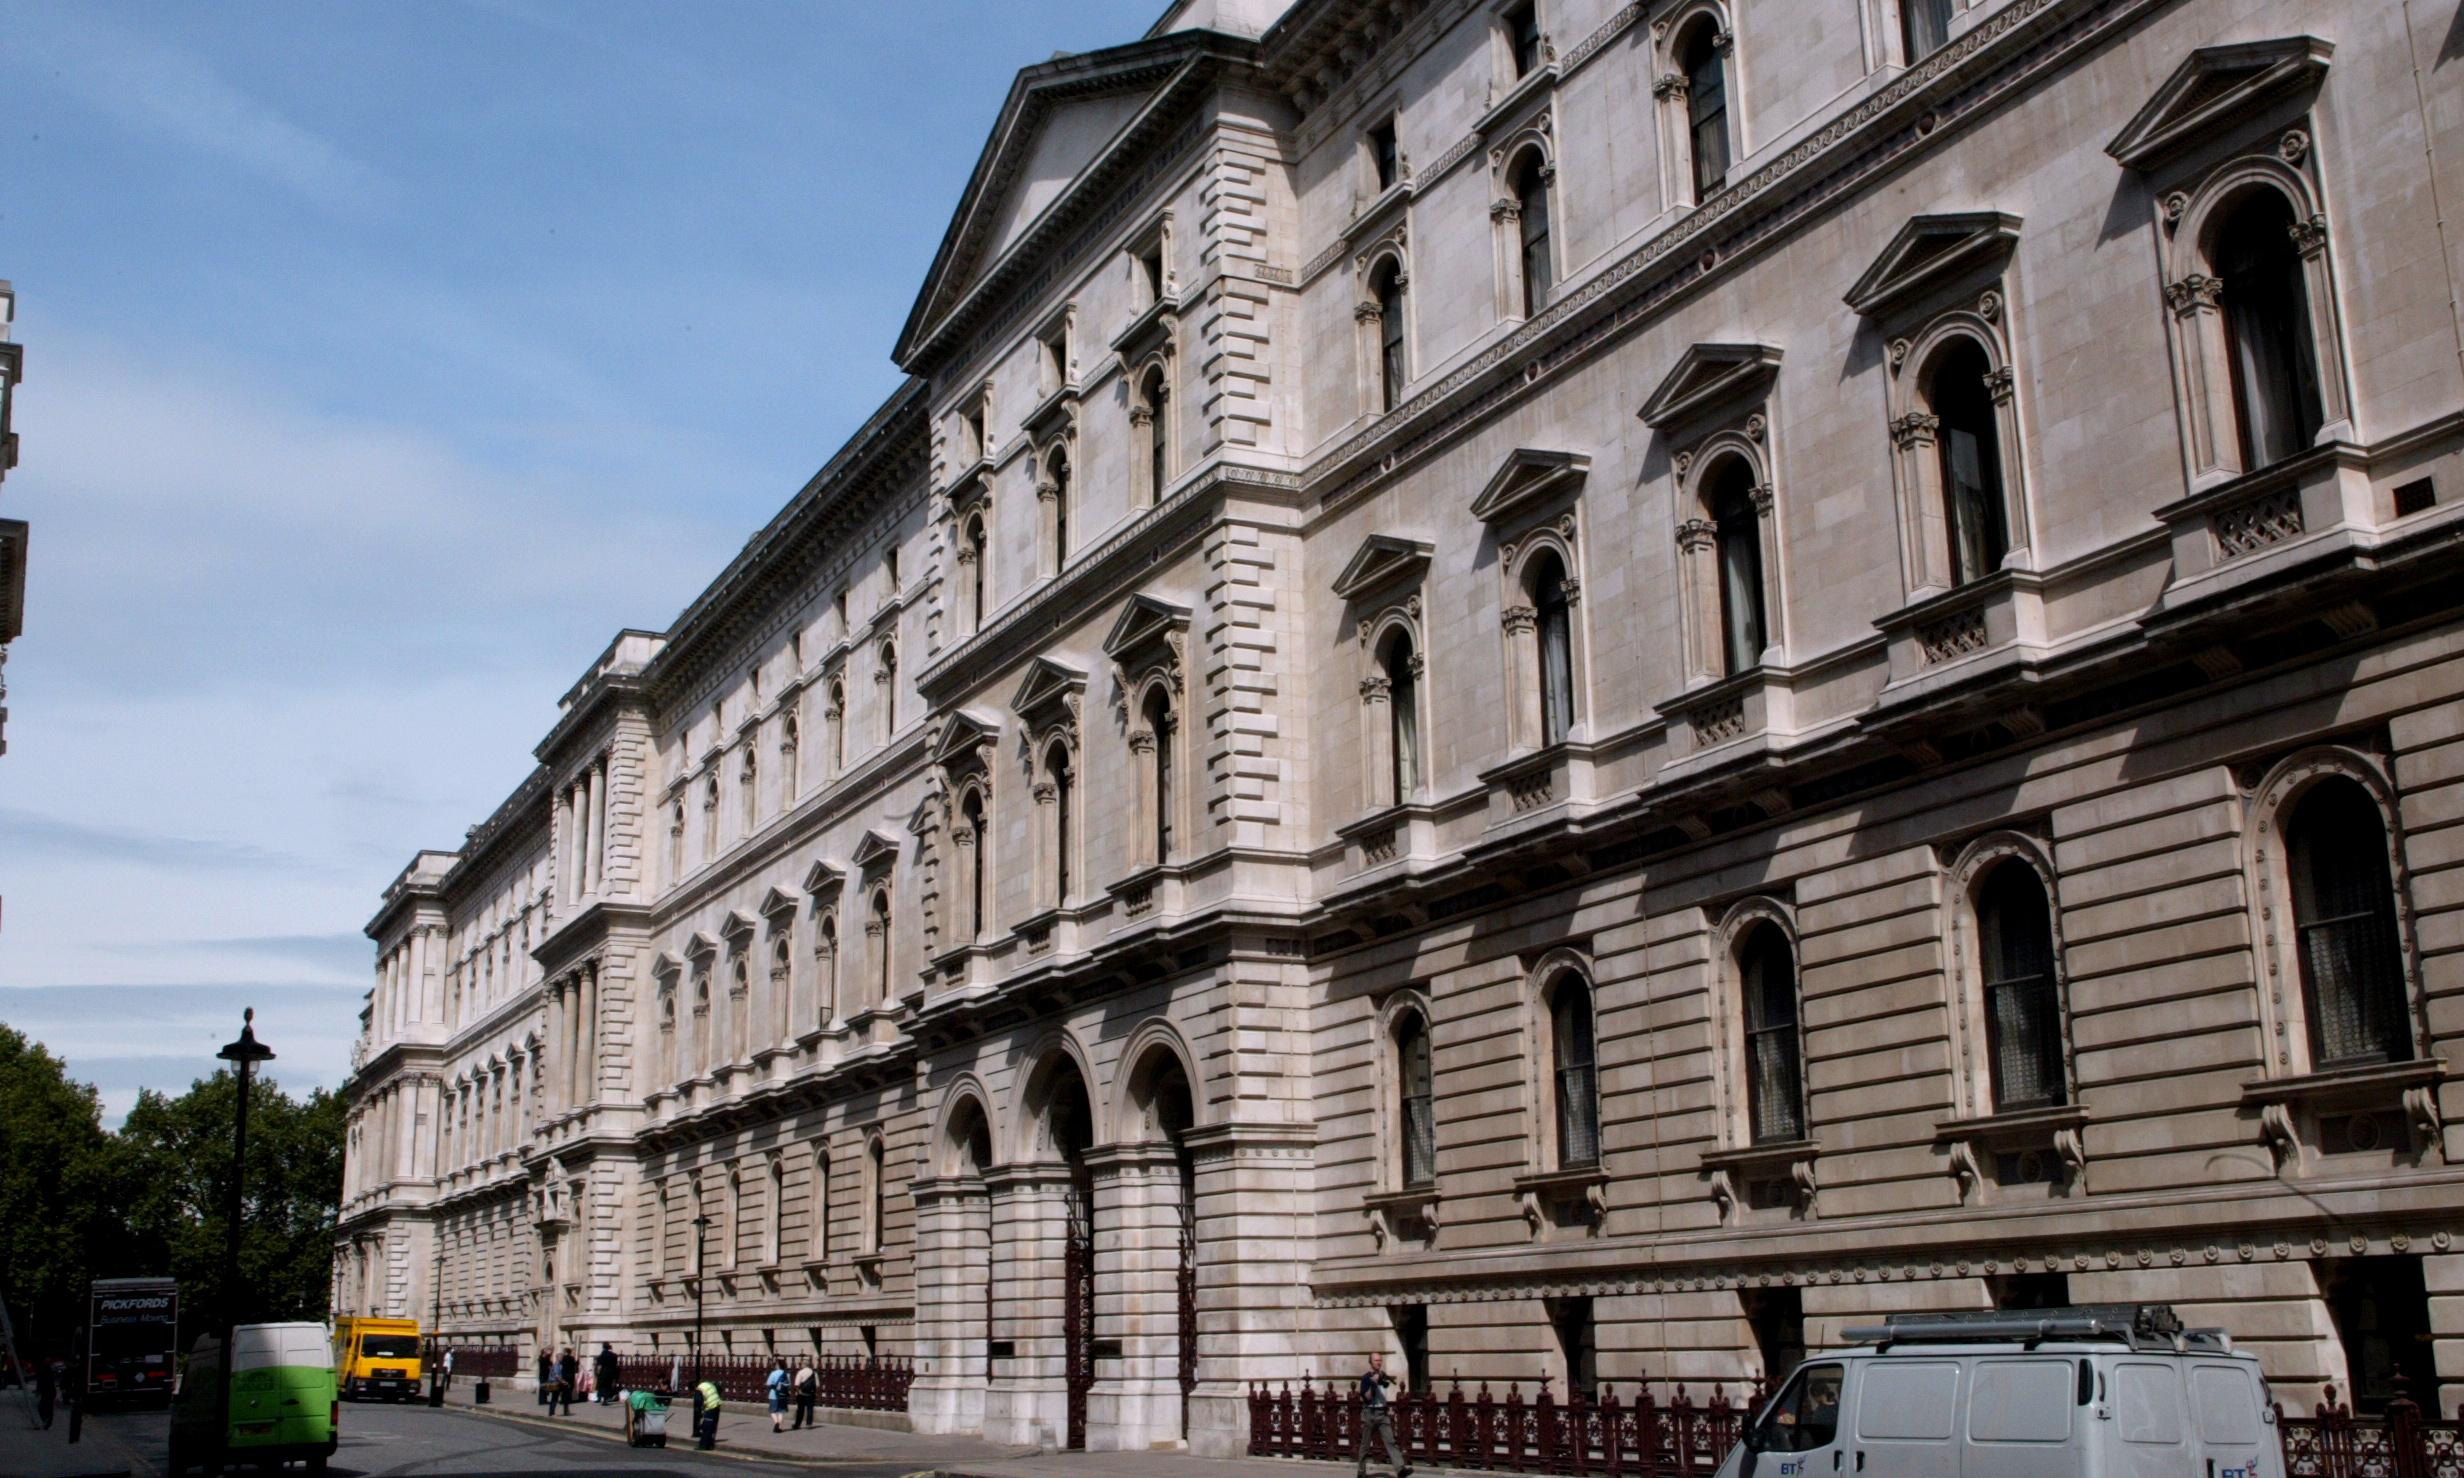 Foreign Office overseas staffing cut by 1,000 in 30 years, say diplomats